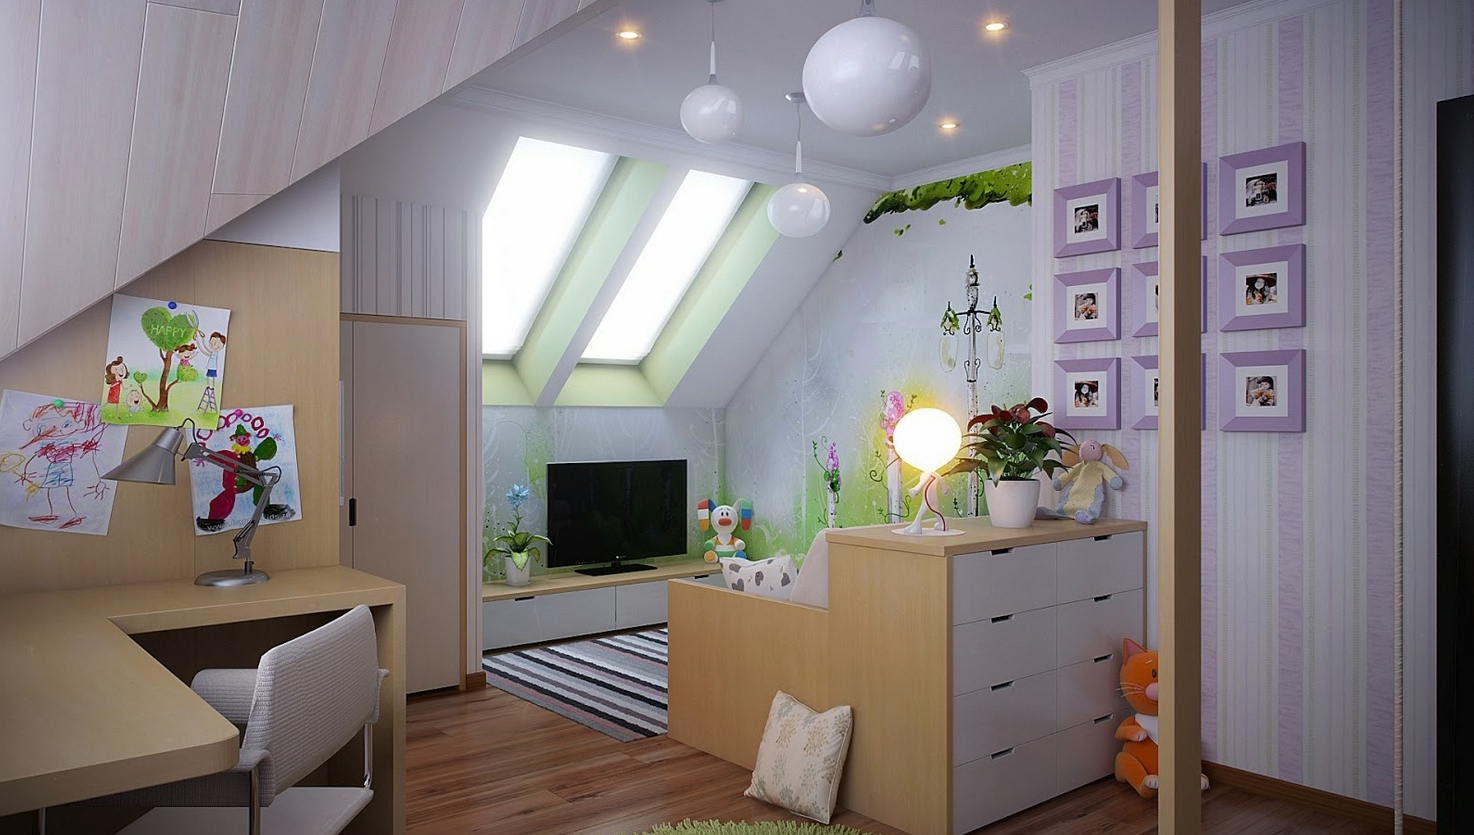 Featured Image of Cute And Fresh Attic Living Room Interior